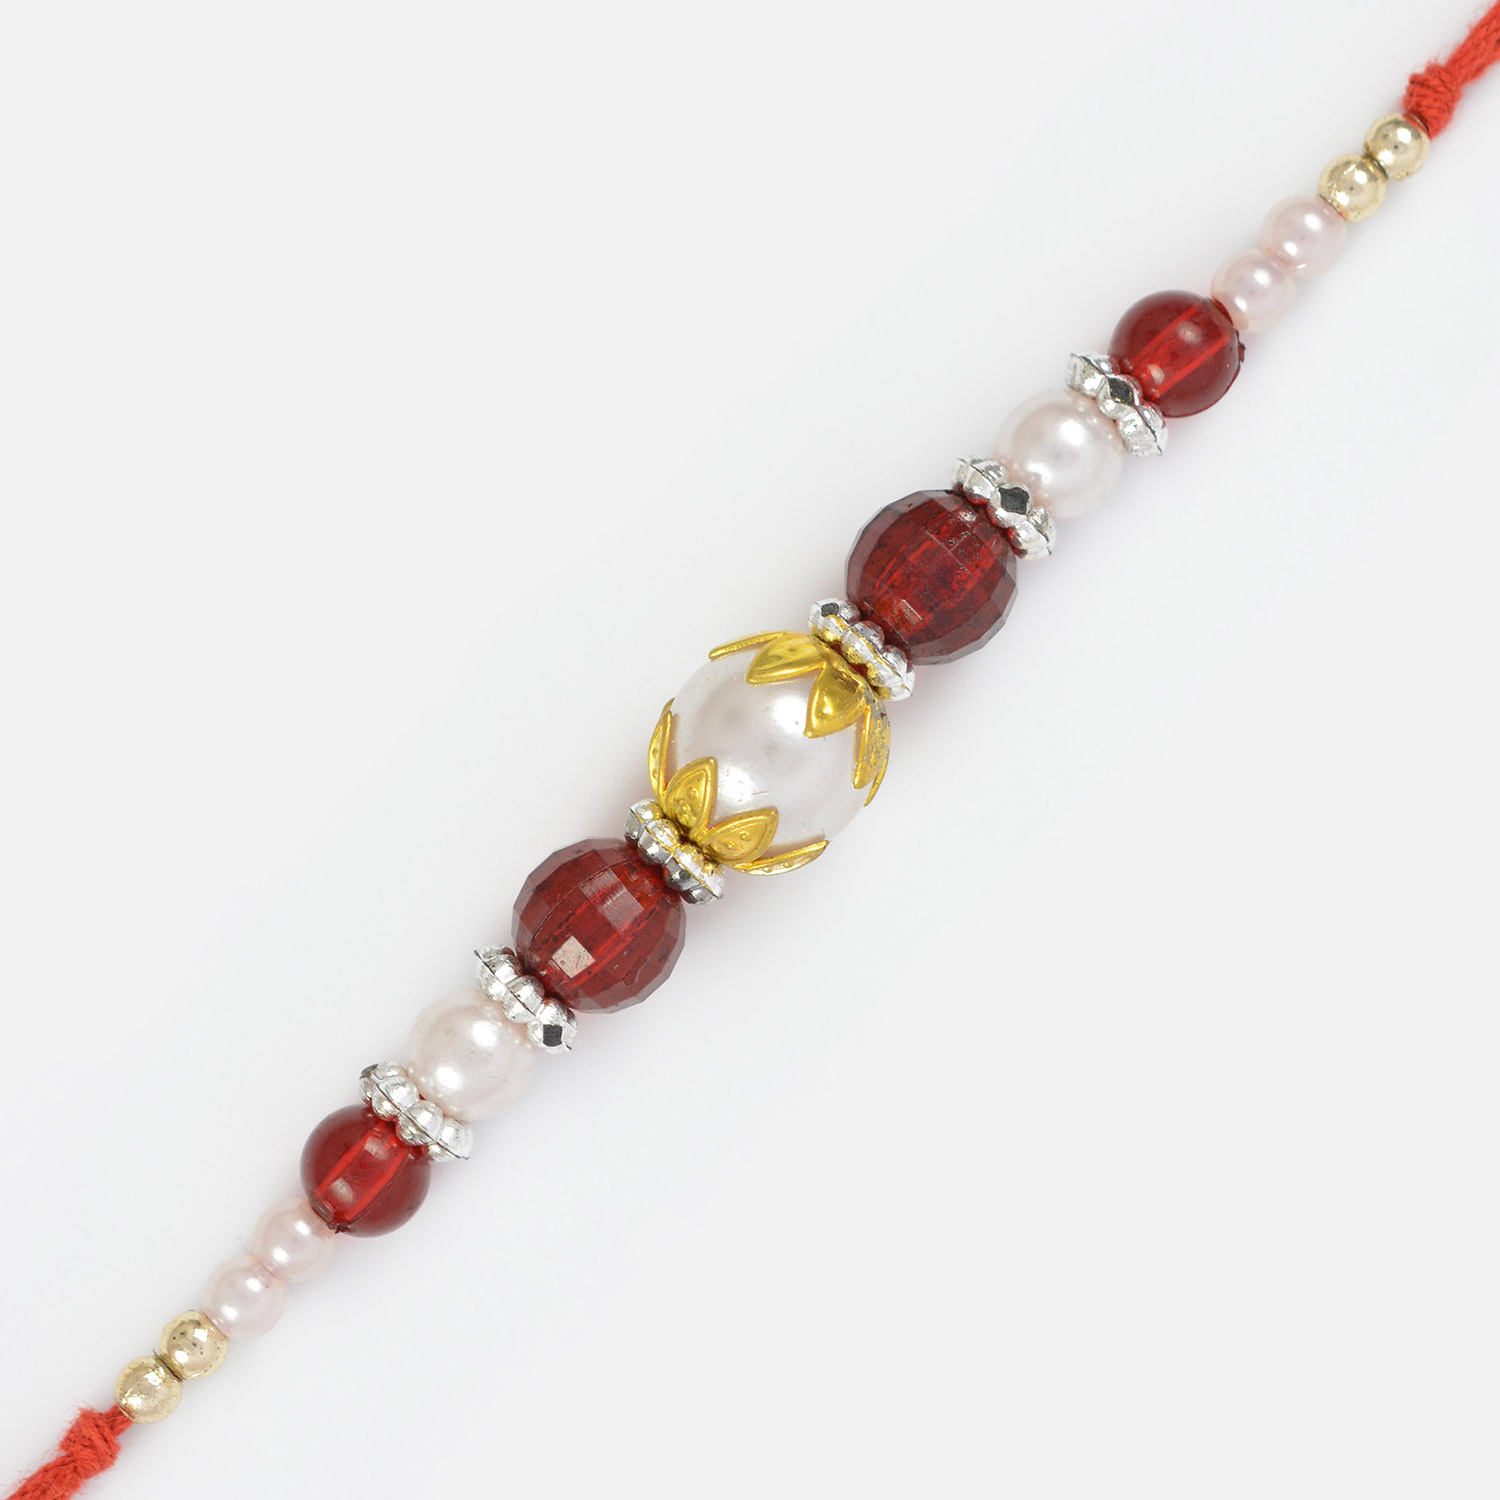 Pearl and Red Glass Beads in Golden Leafy Designs Fancy Rakhi